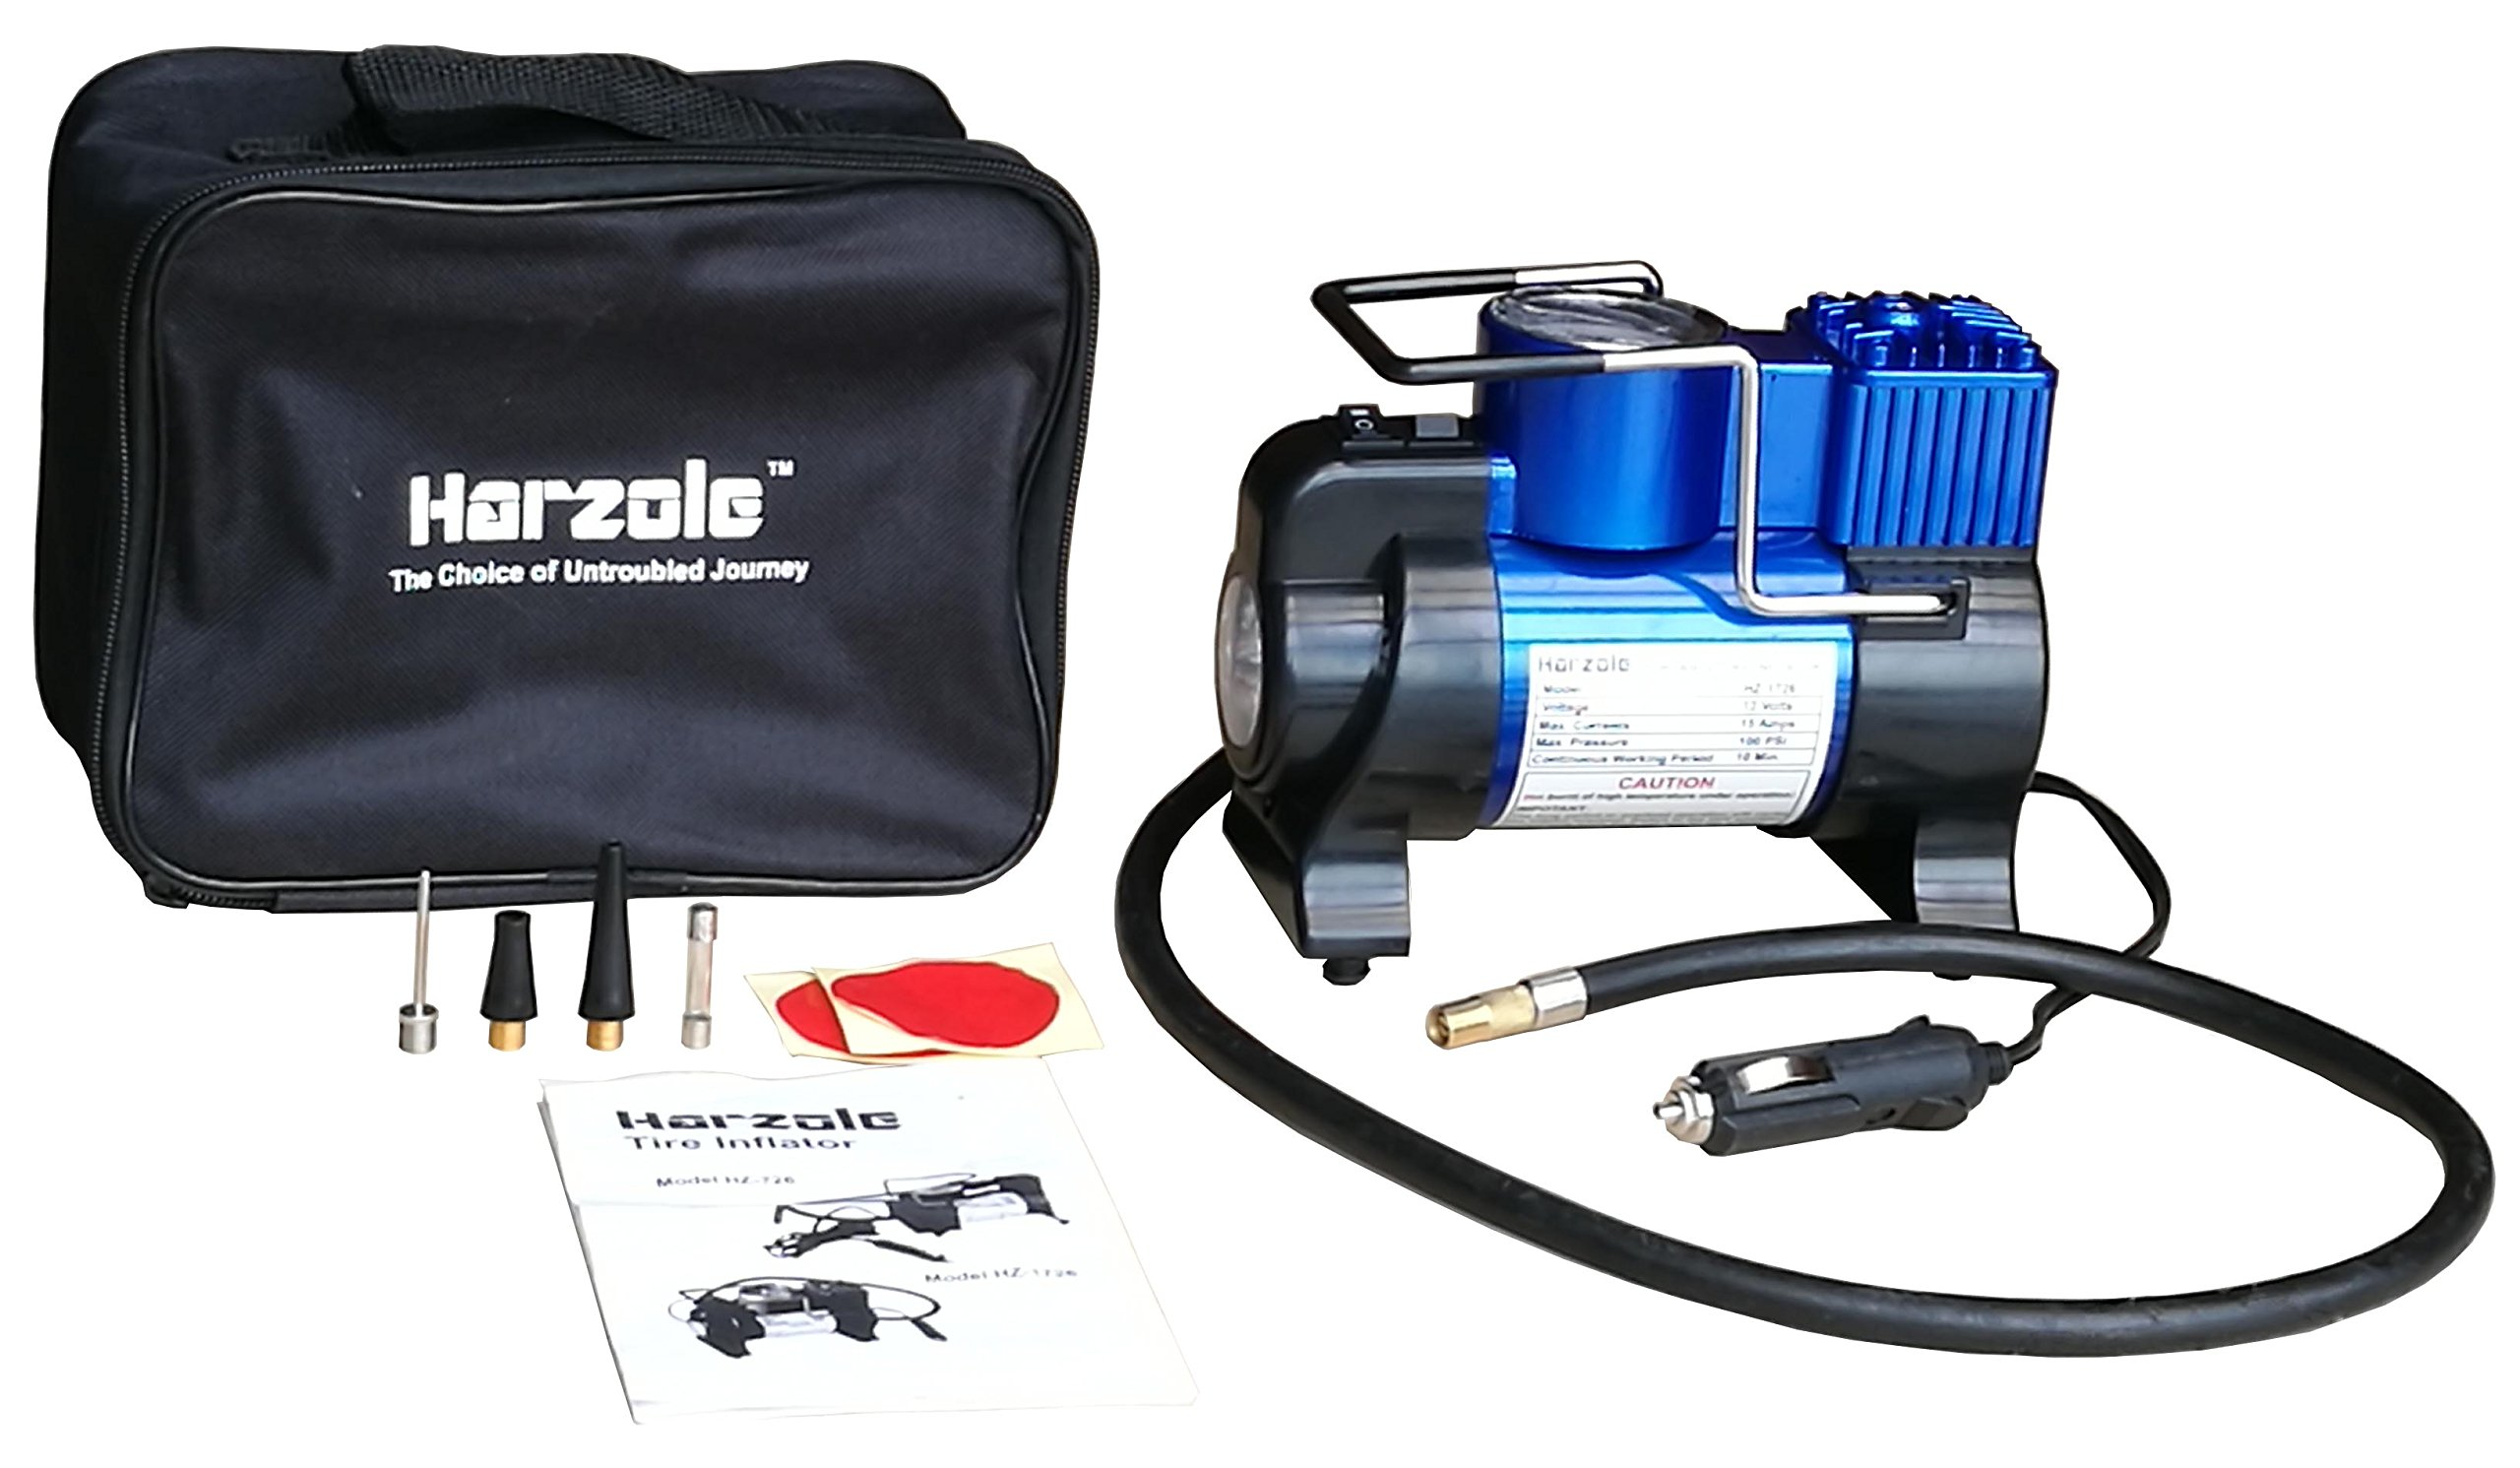 Harzole DC 12V Car Air Pump, Tire Inflator, Portable Air Compressor with LED Lighter HZ-1726